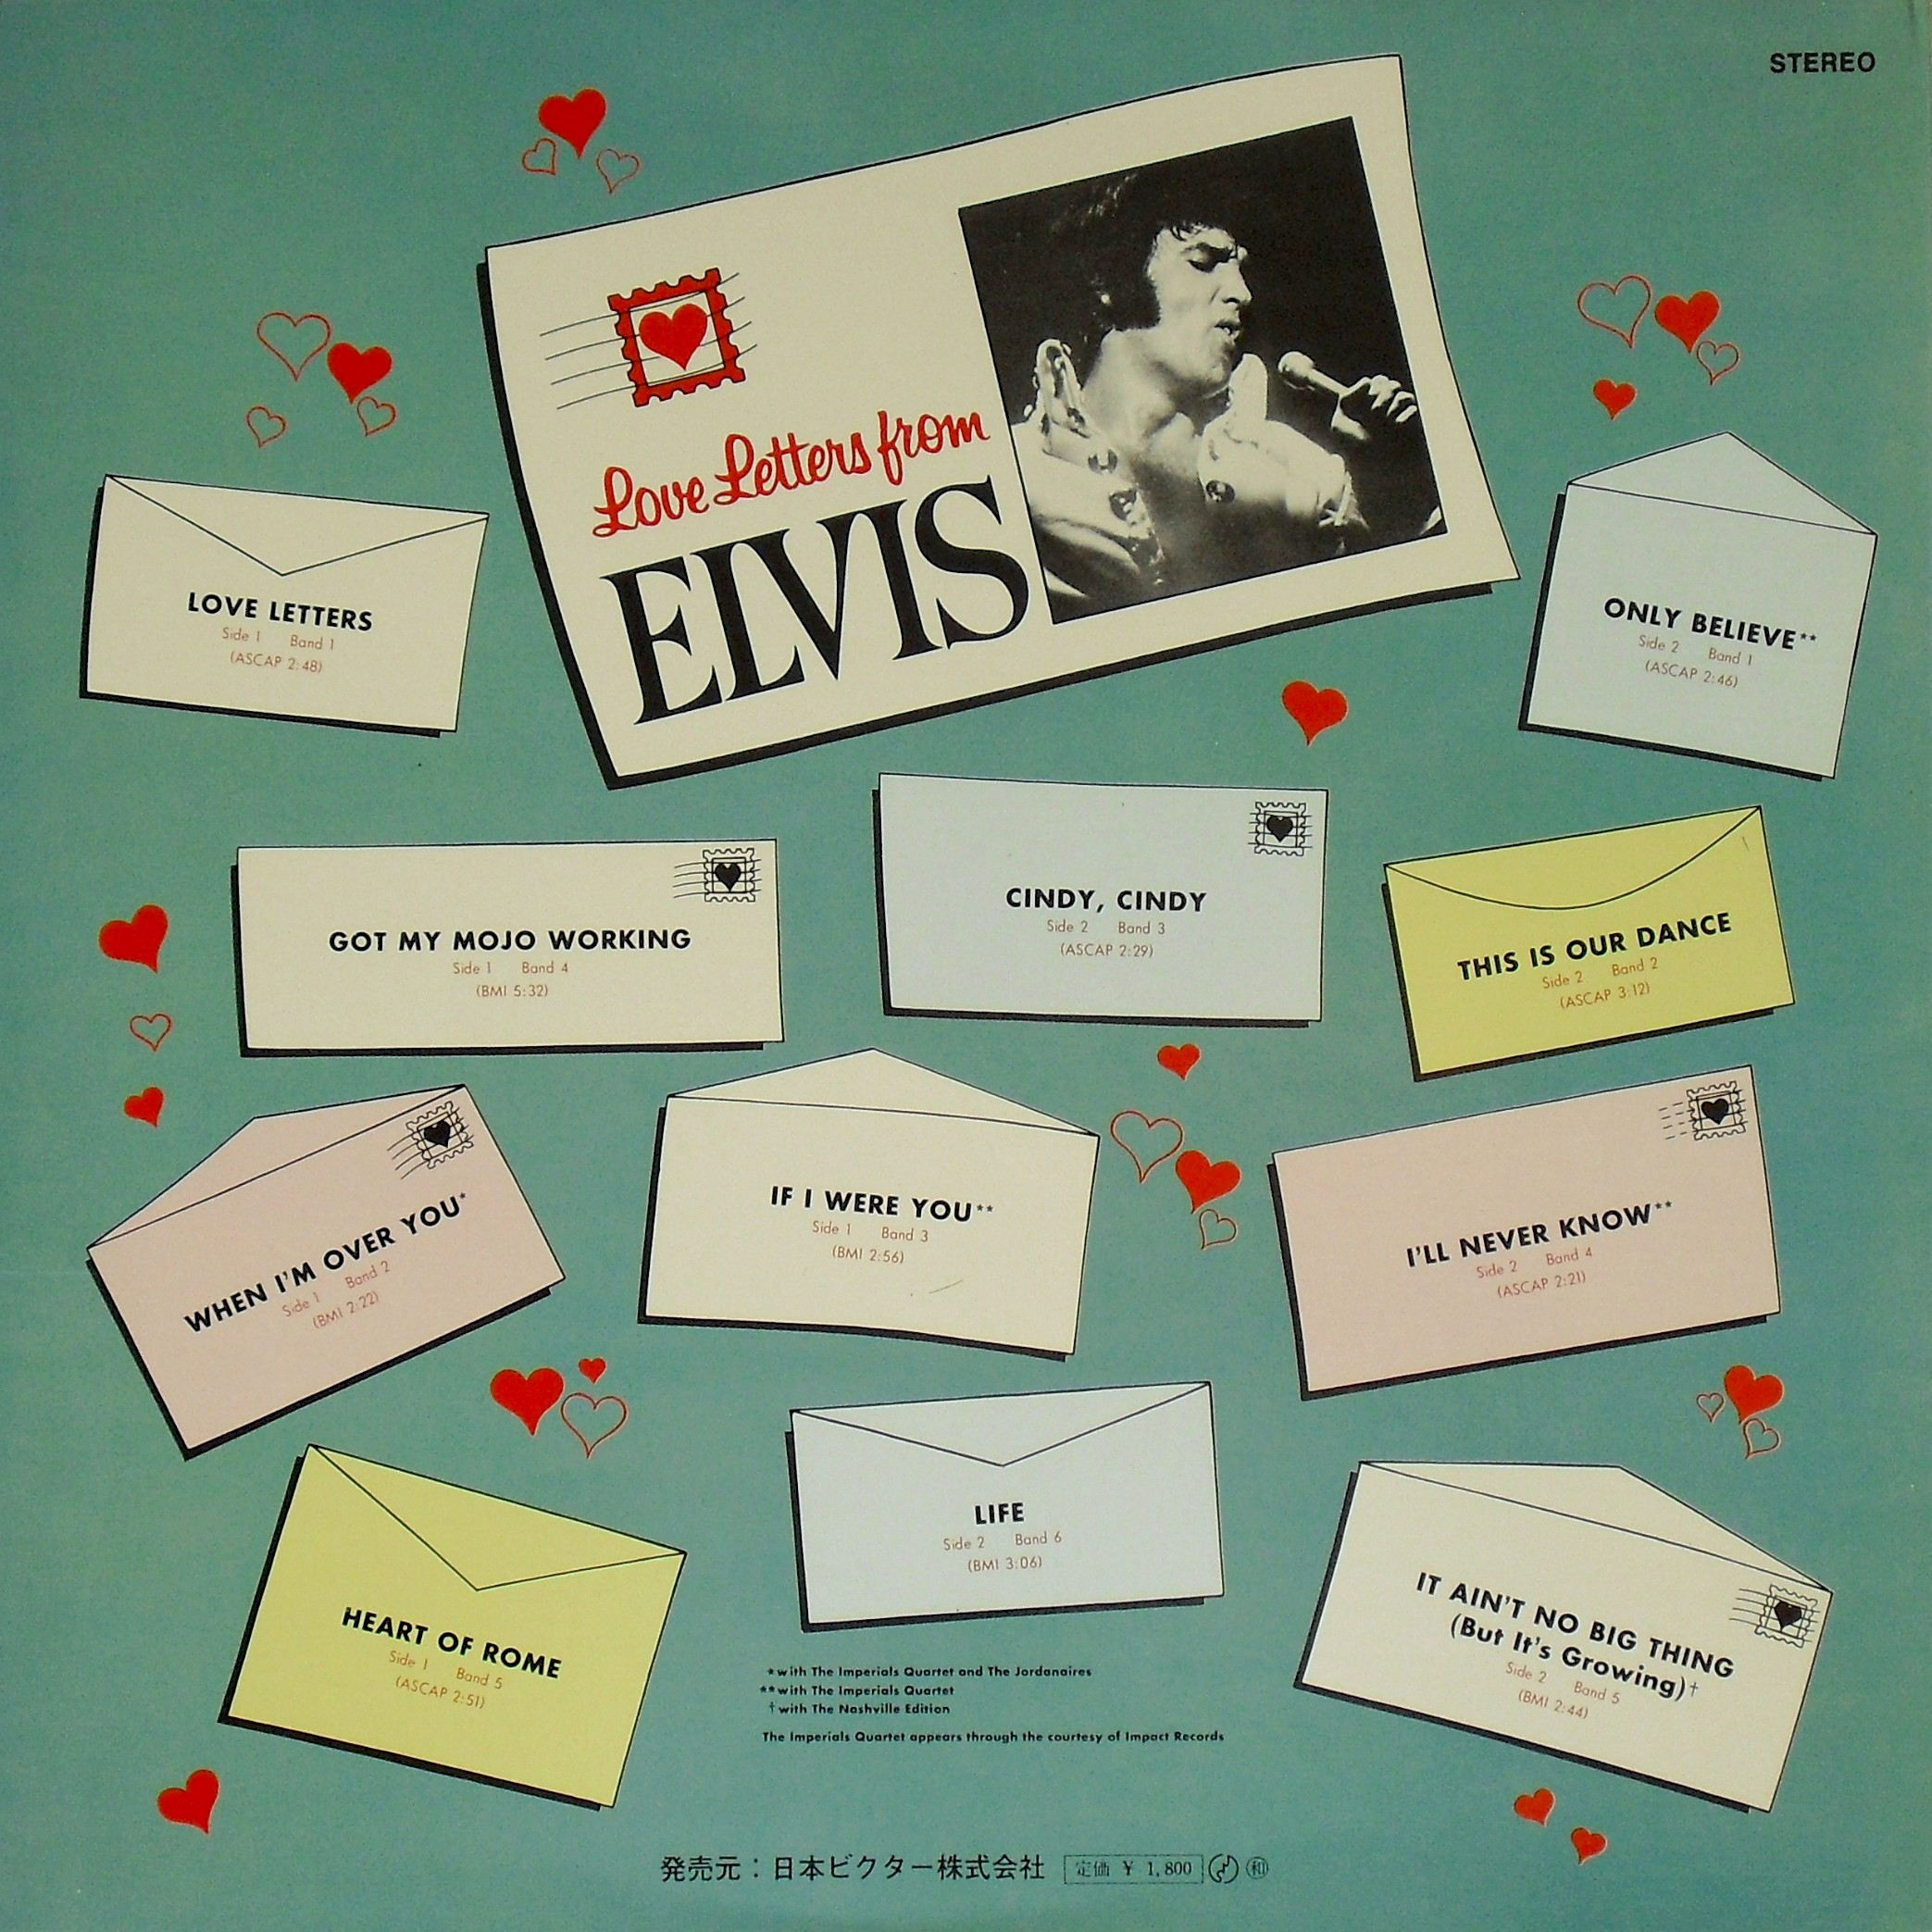 LOVE LETTERS FROM ELVIS 03yhqvf